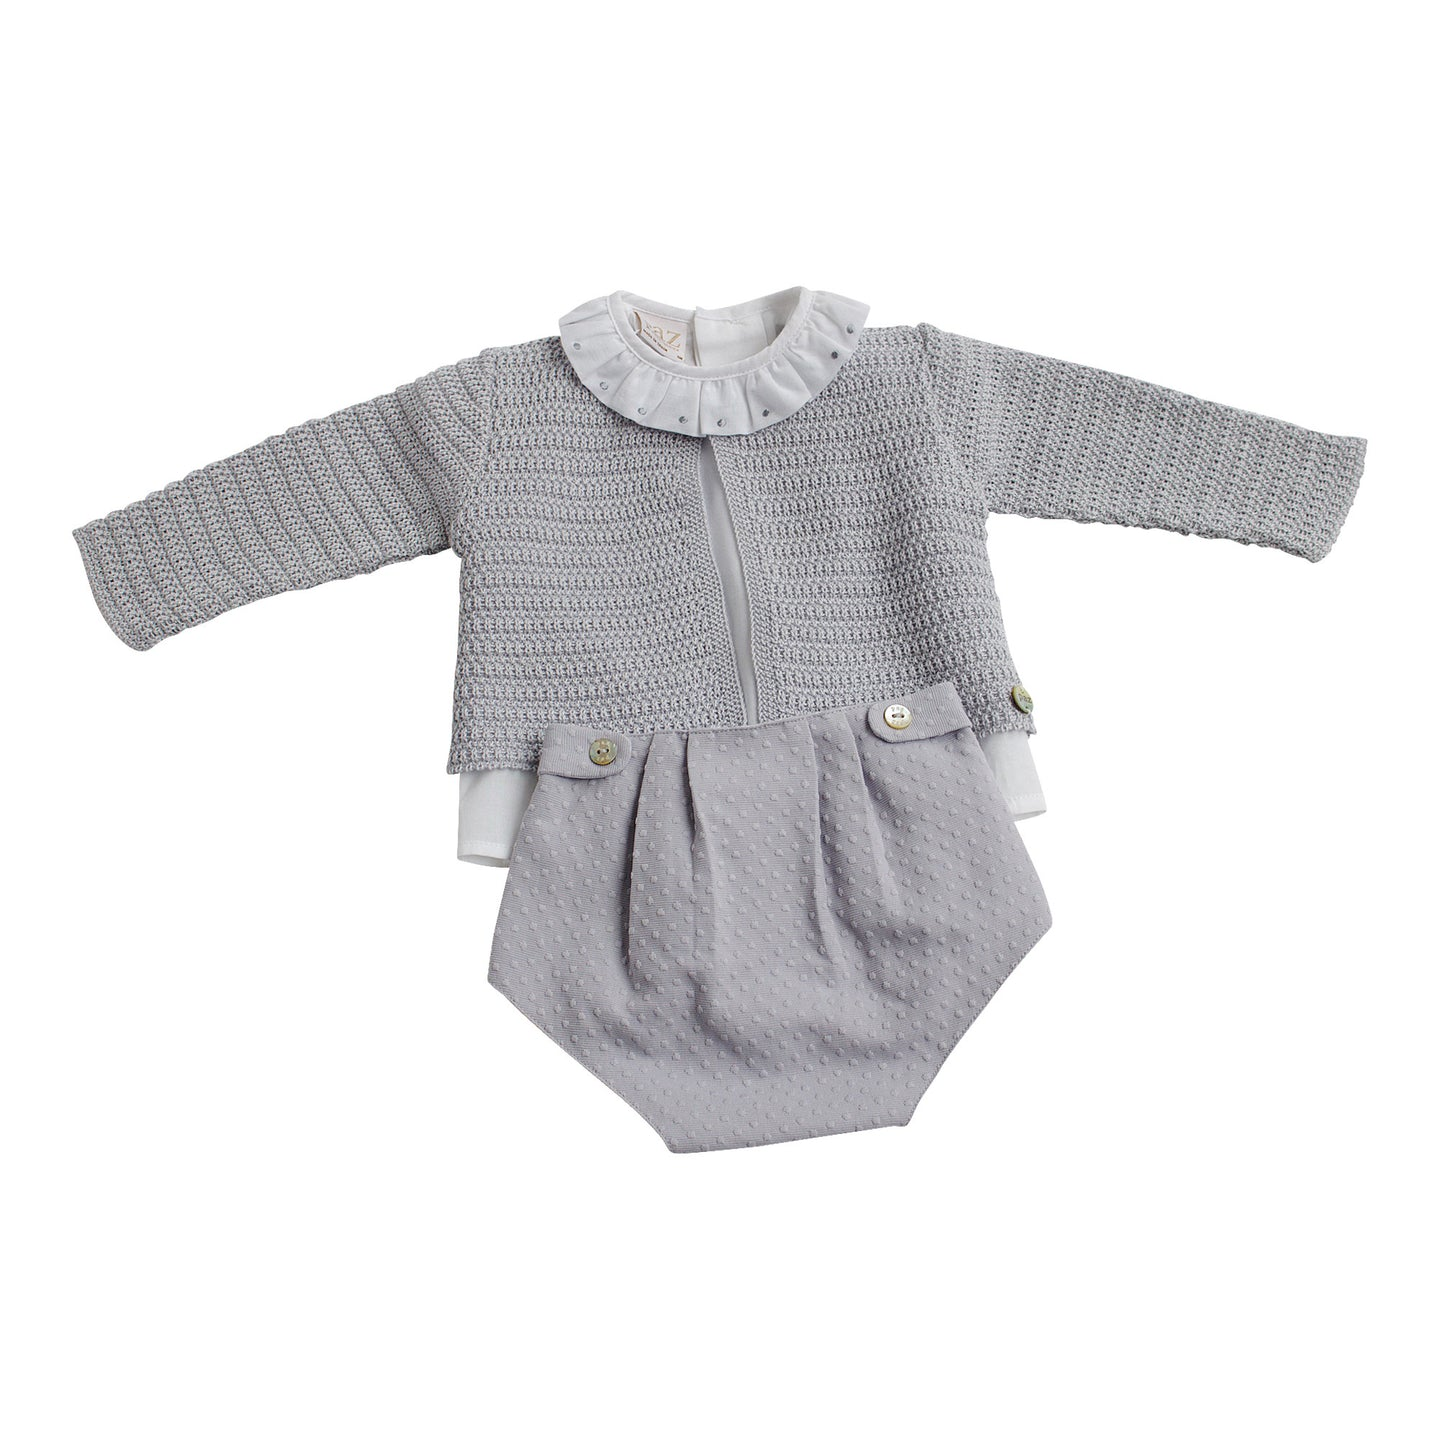 ee7fedfc9011 Baby Boutique